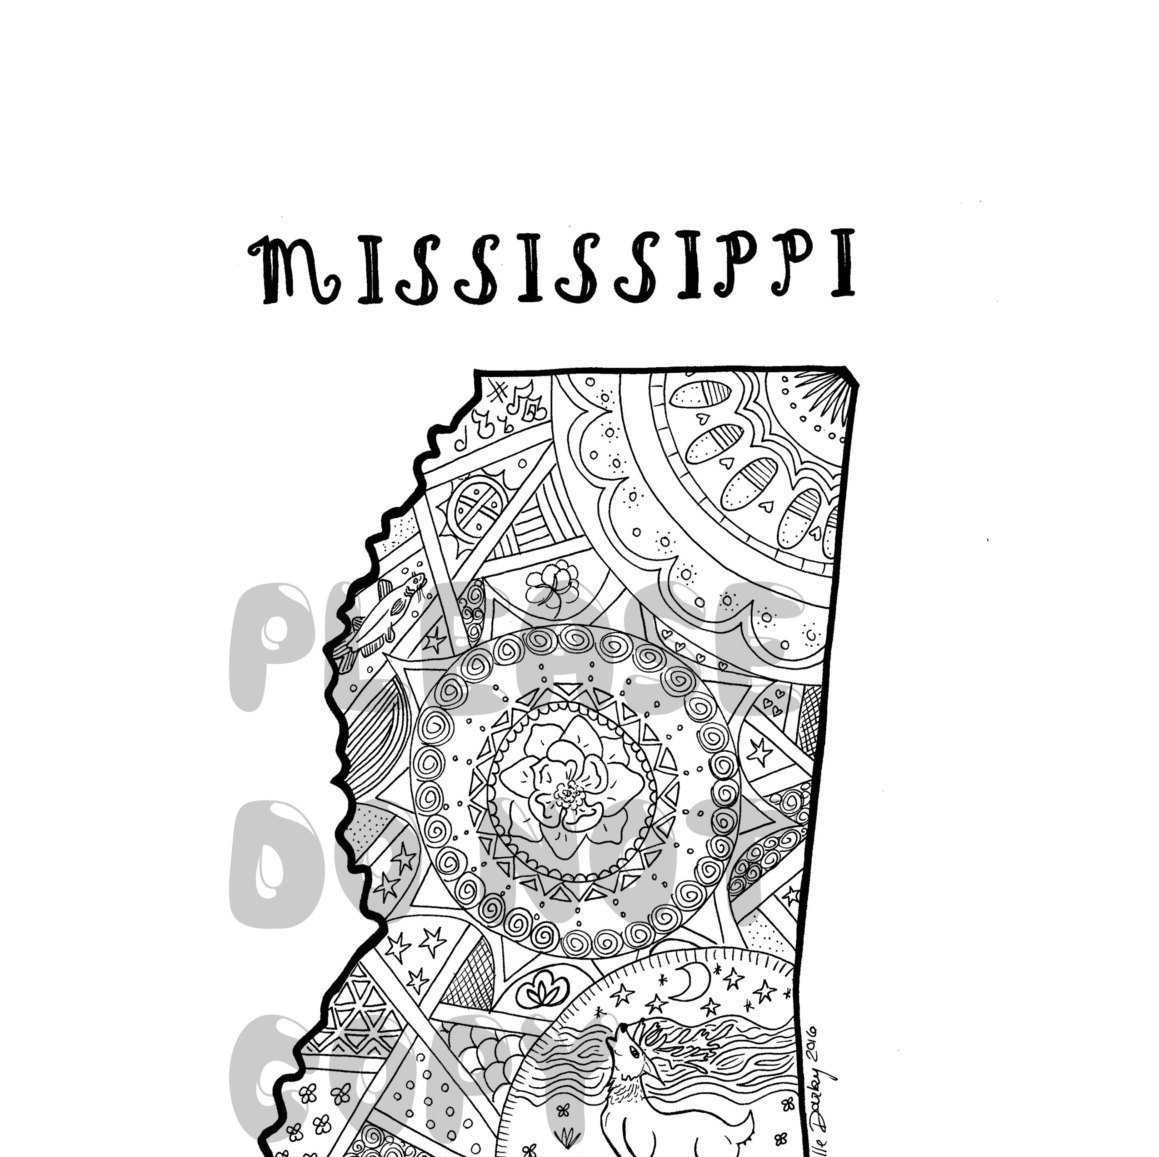 Mississippi State Map Outline.Mississippi State Colouring Page Etsy